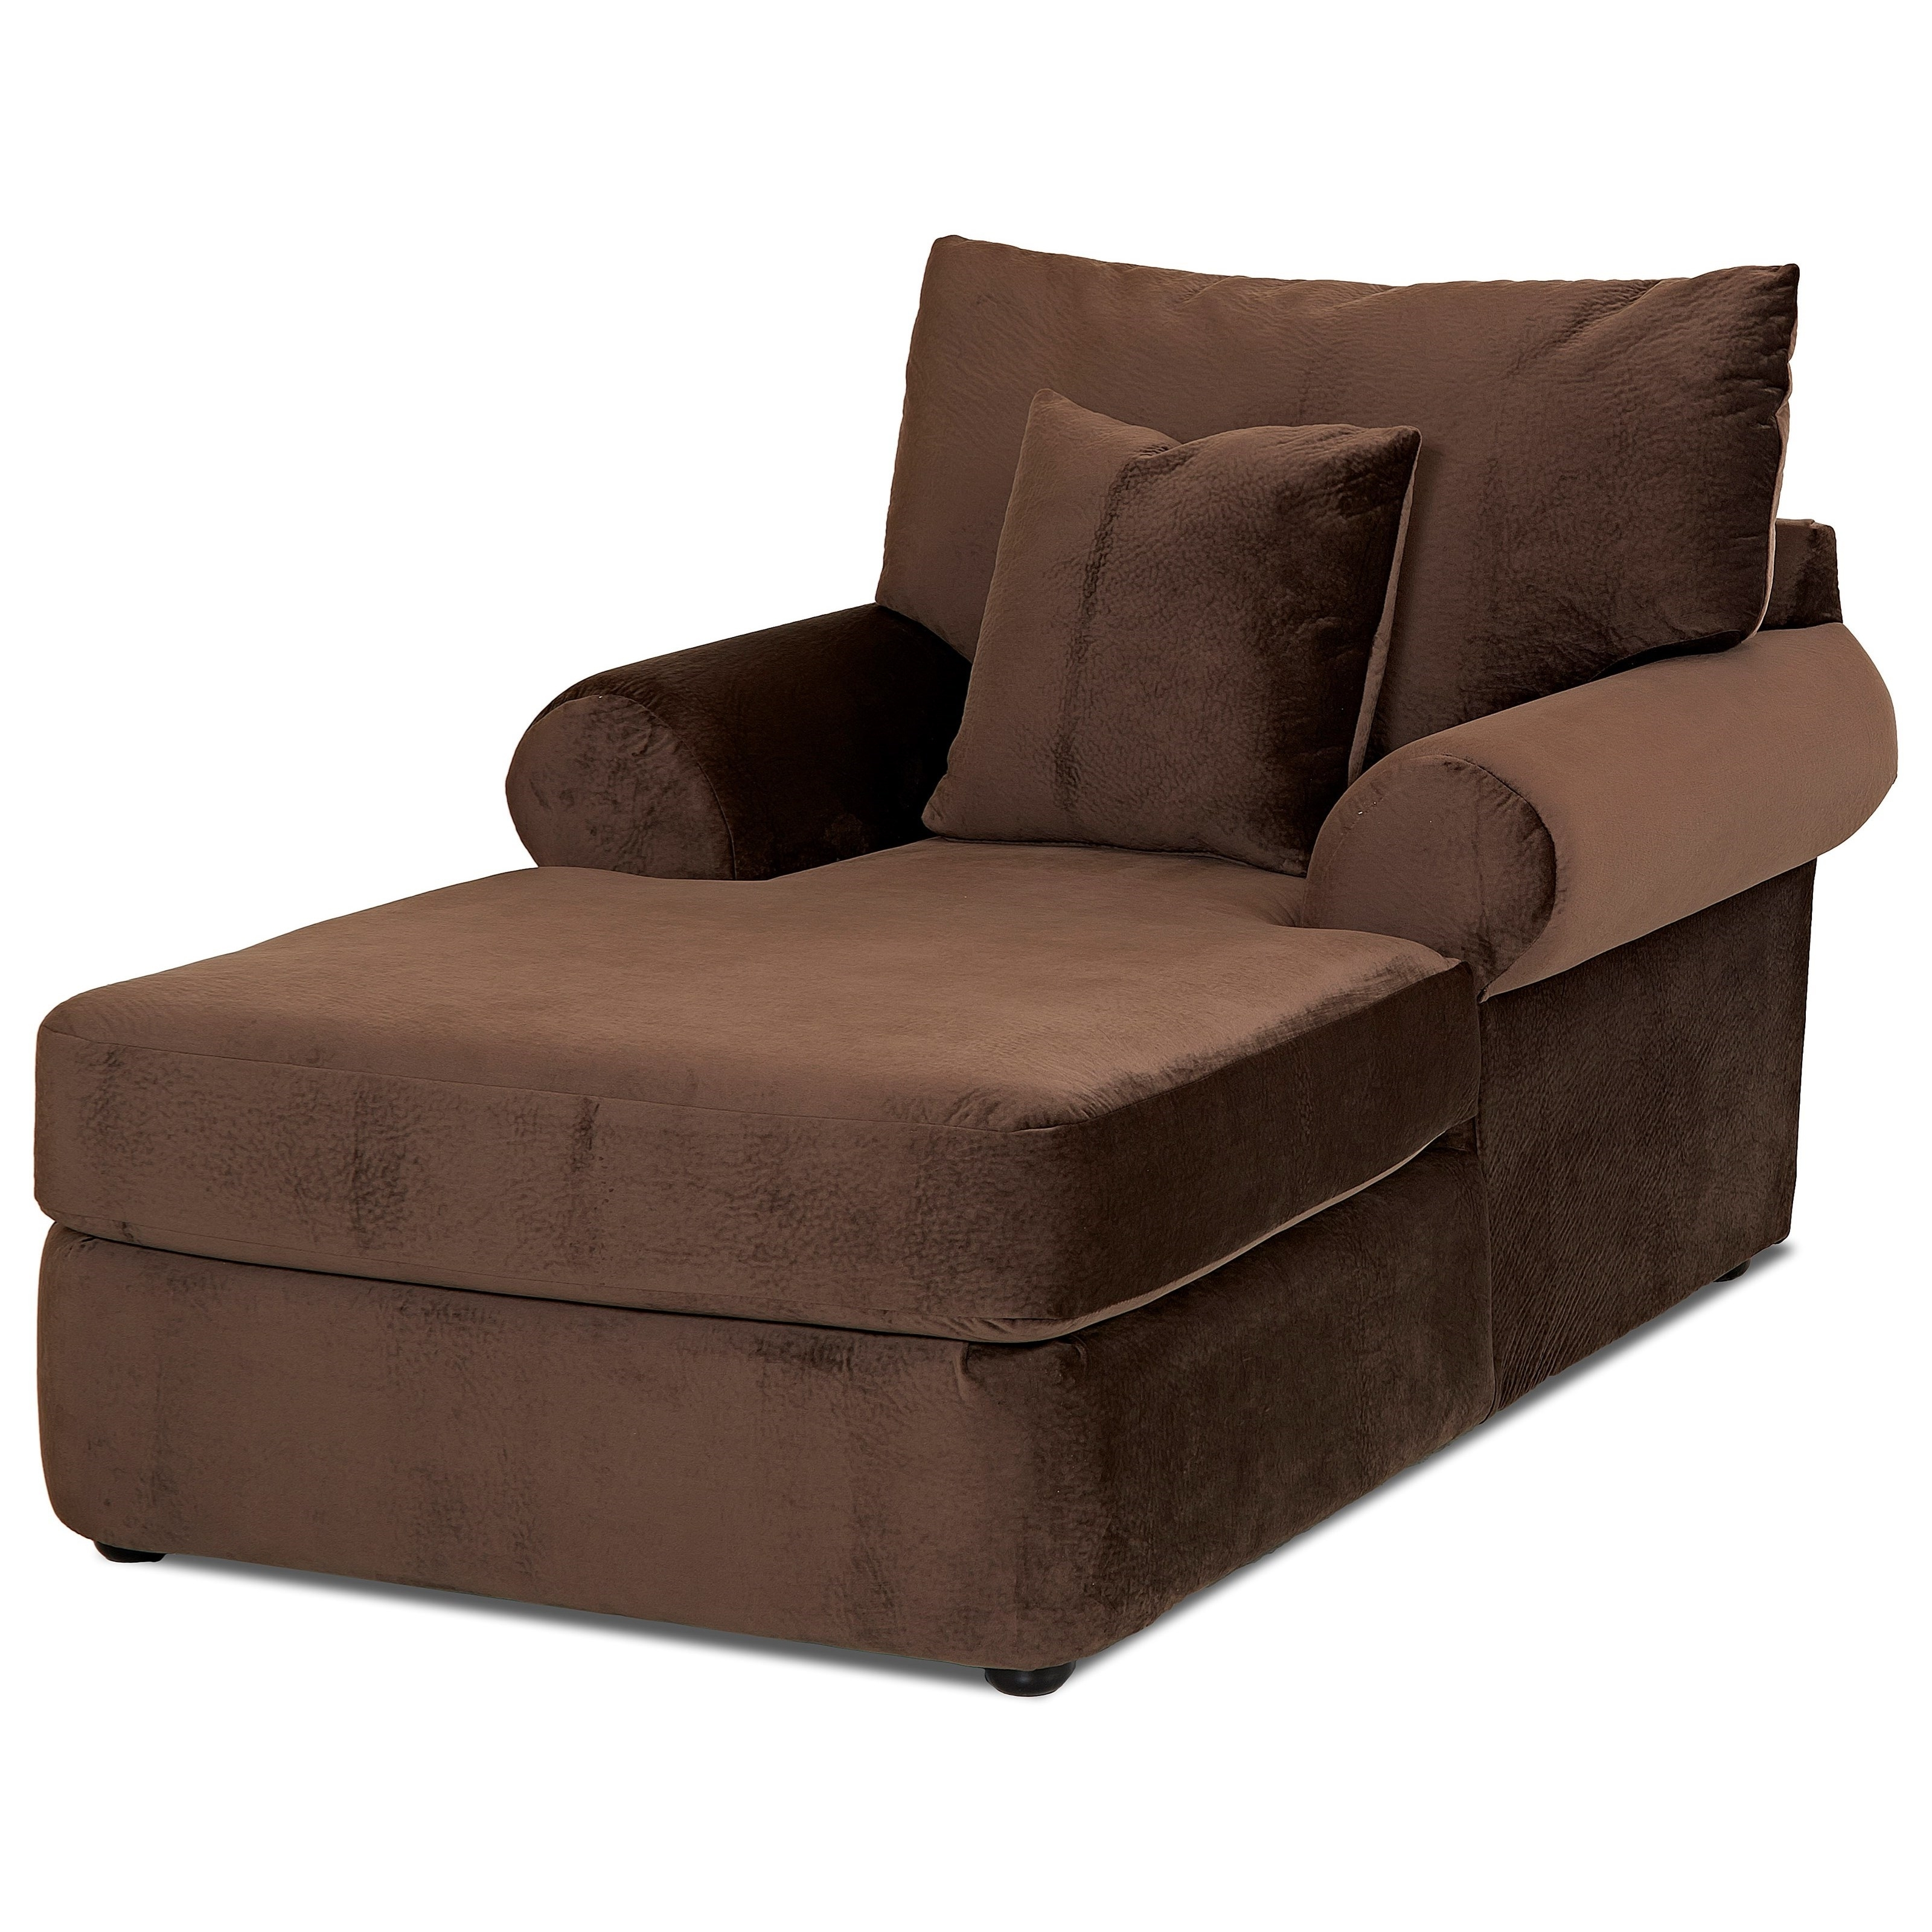 Most Recent Klaussner Chaise Lounge Chairs Regarding Casual Plush Chaise Loungeklaussner (View 11 of 15)